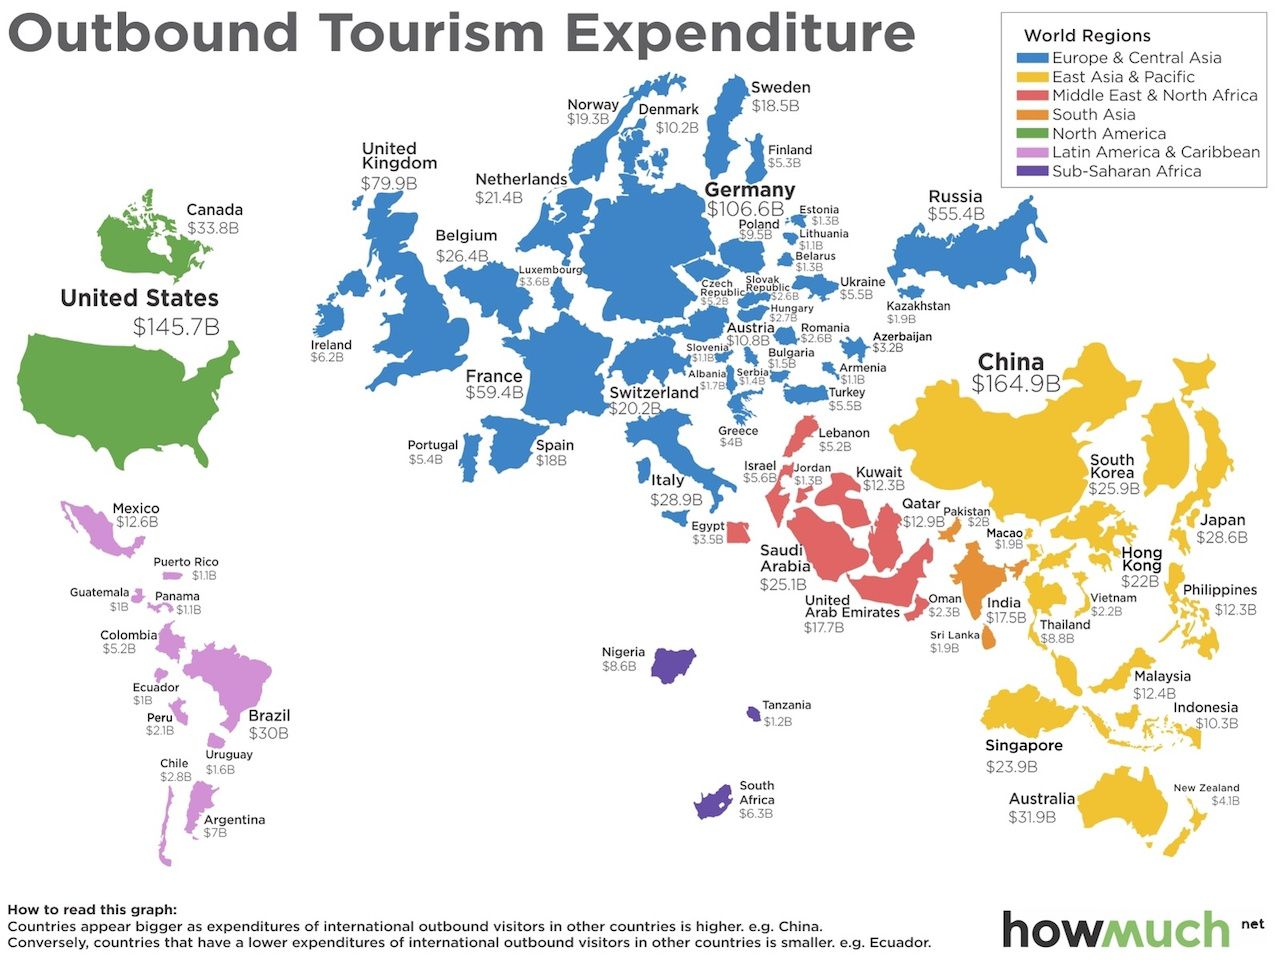 Countries spend travel